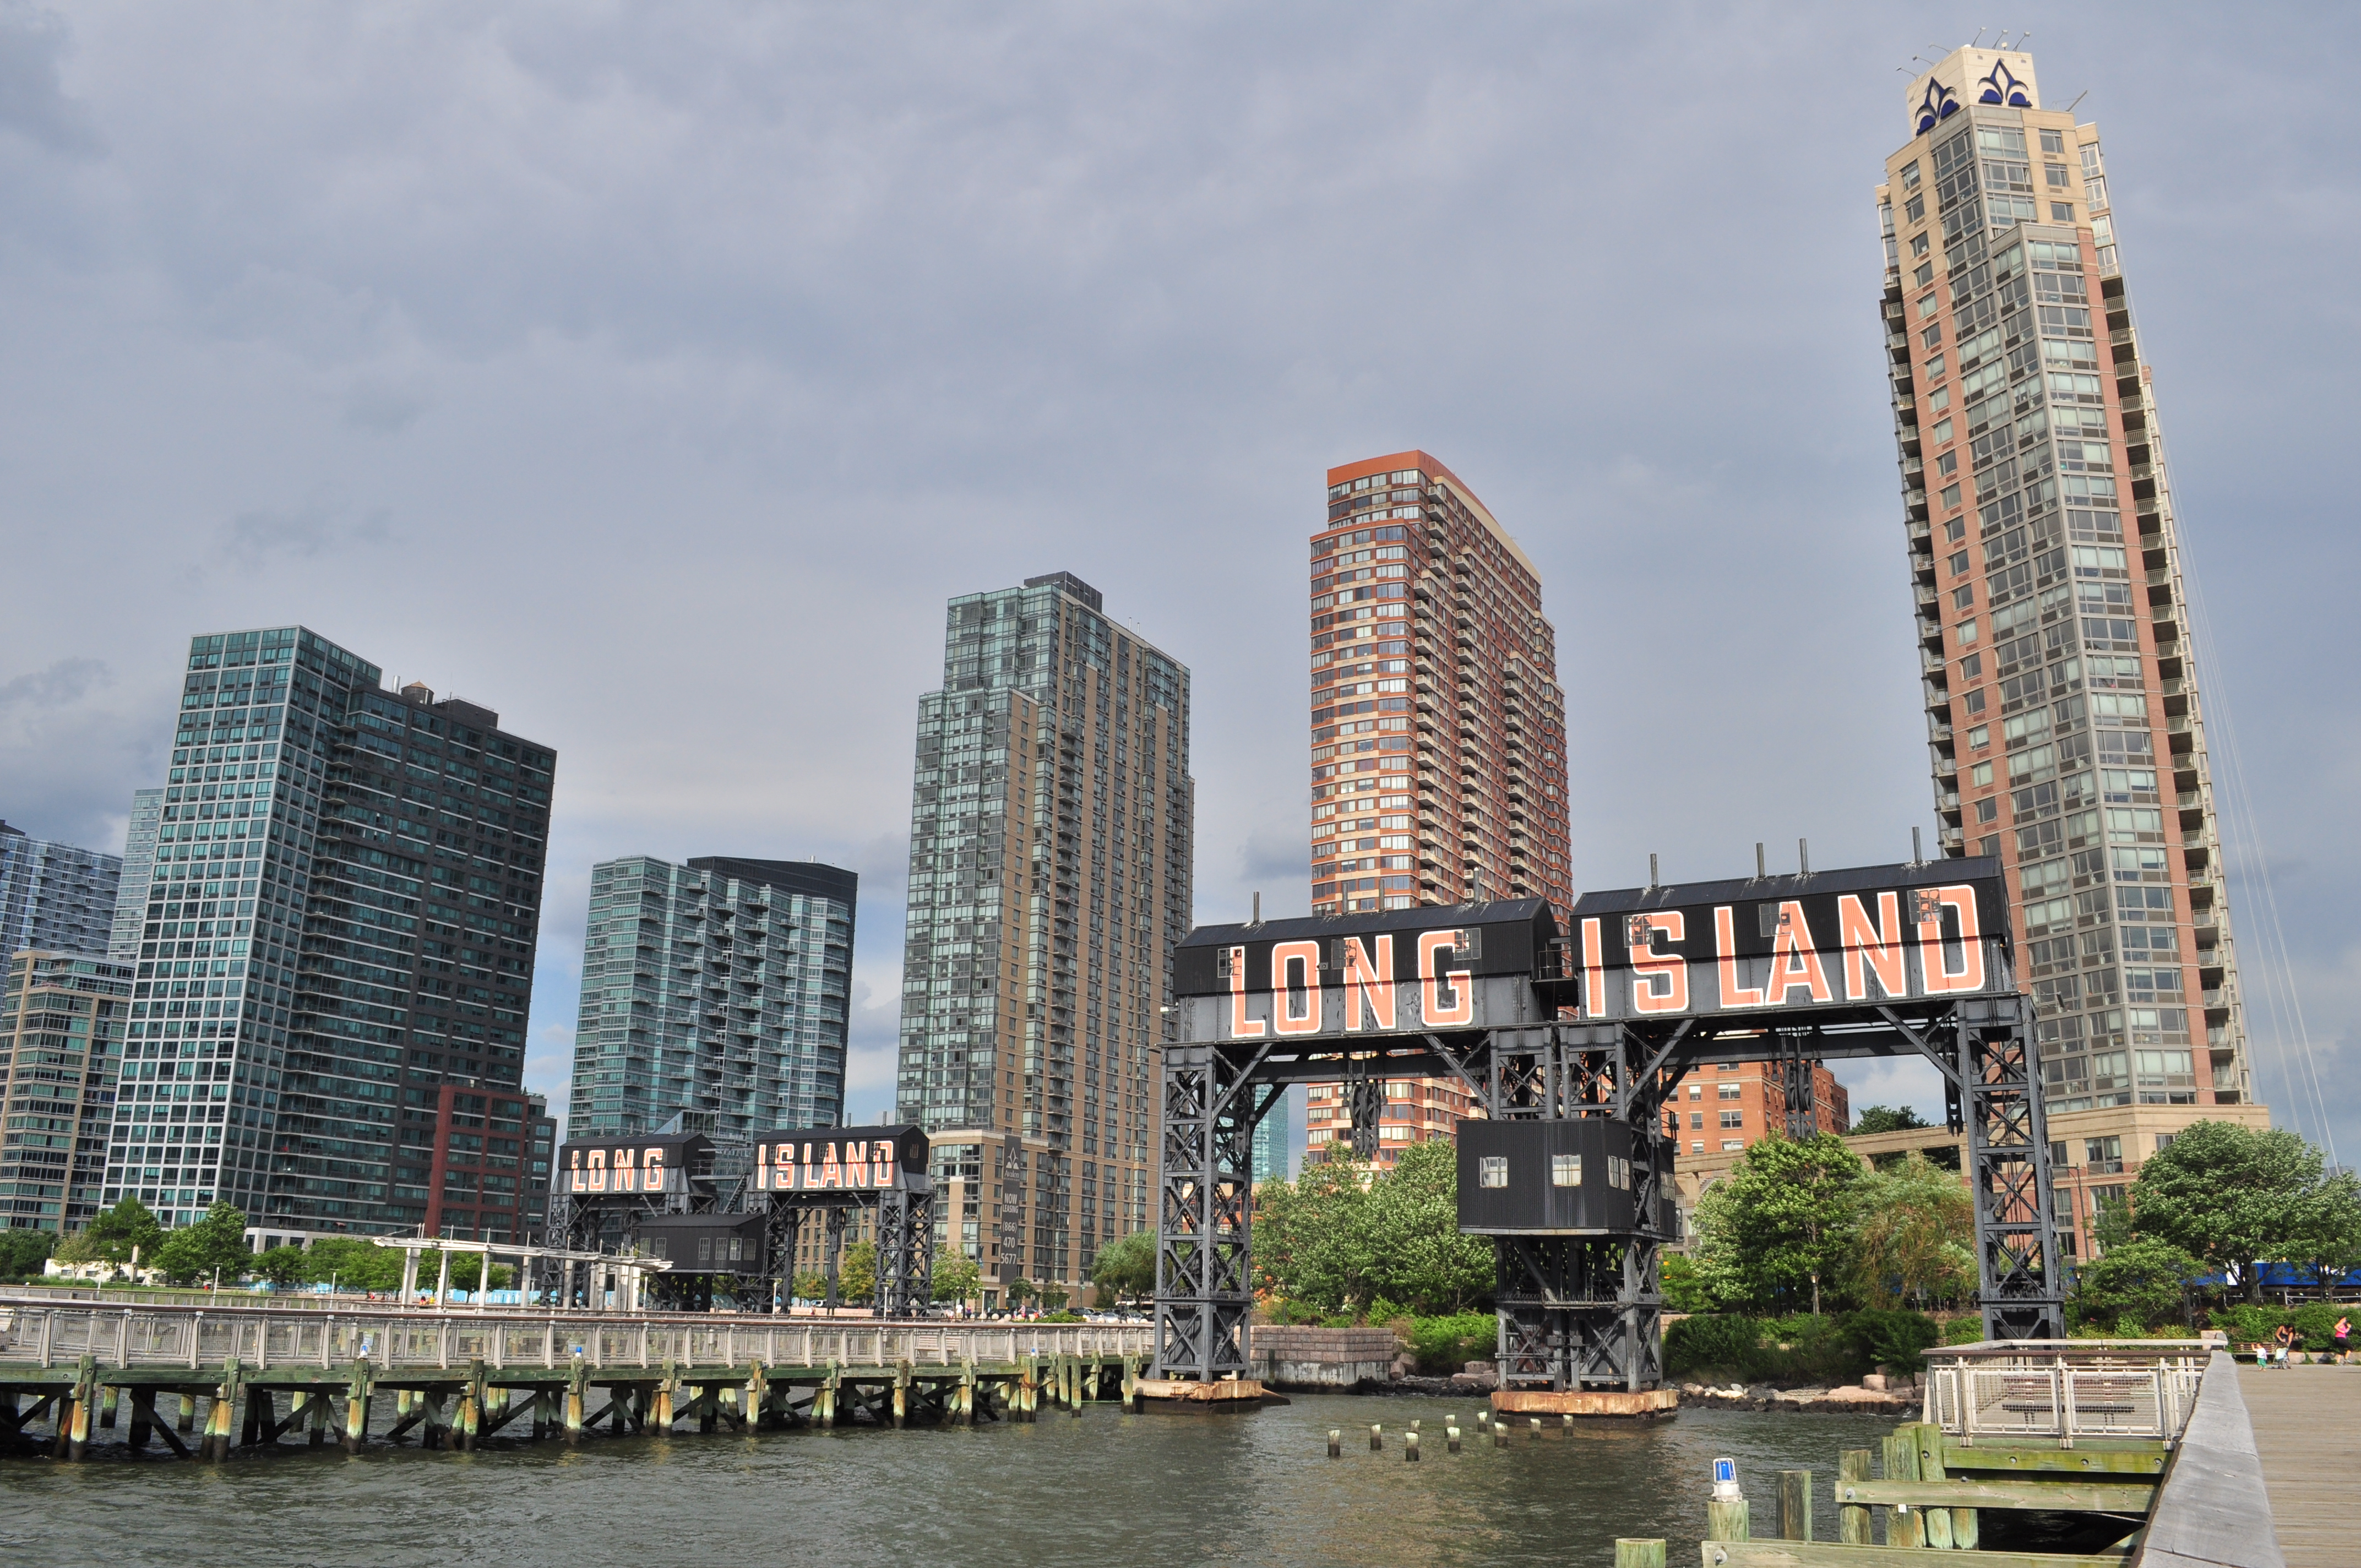 lic rental prices soften luxury apartments down 7 on average for